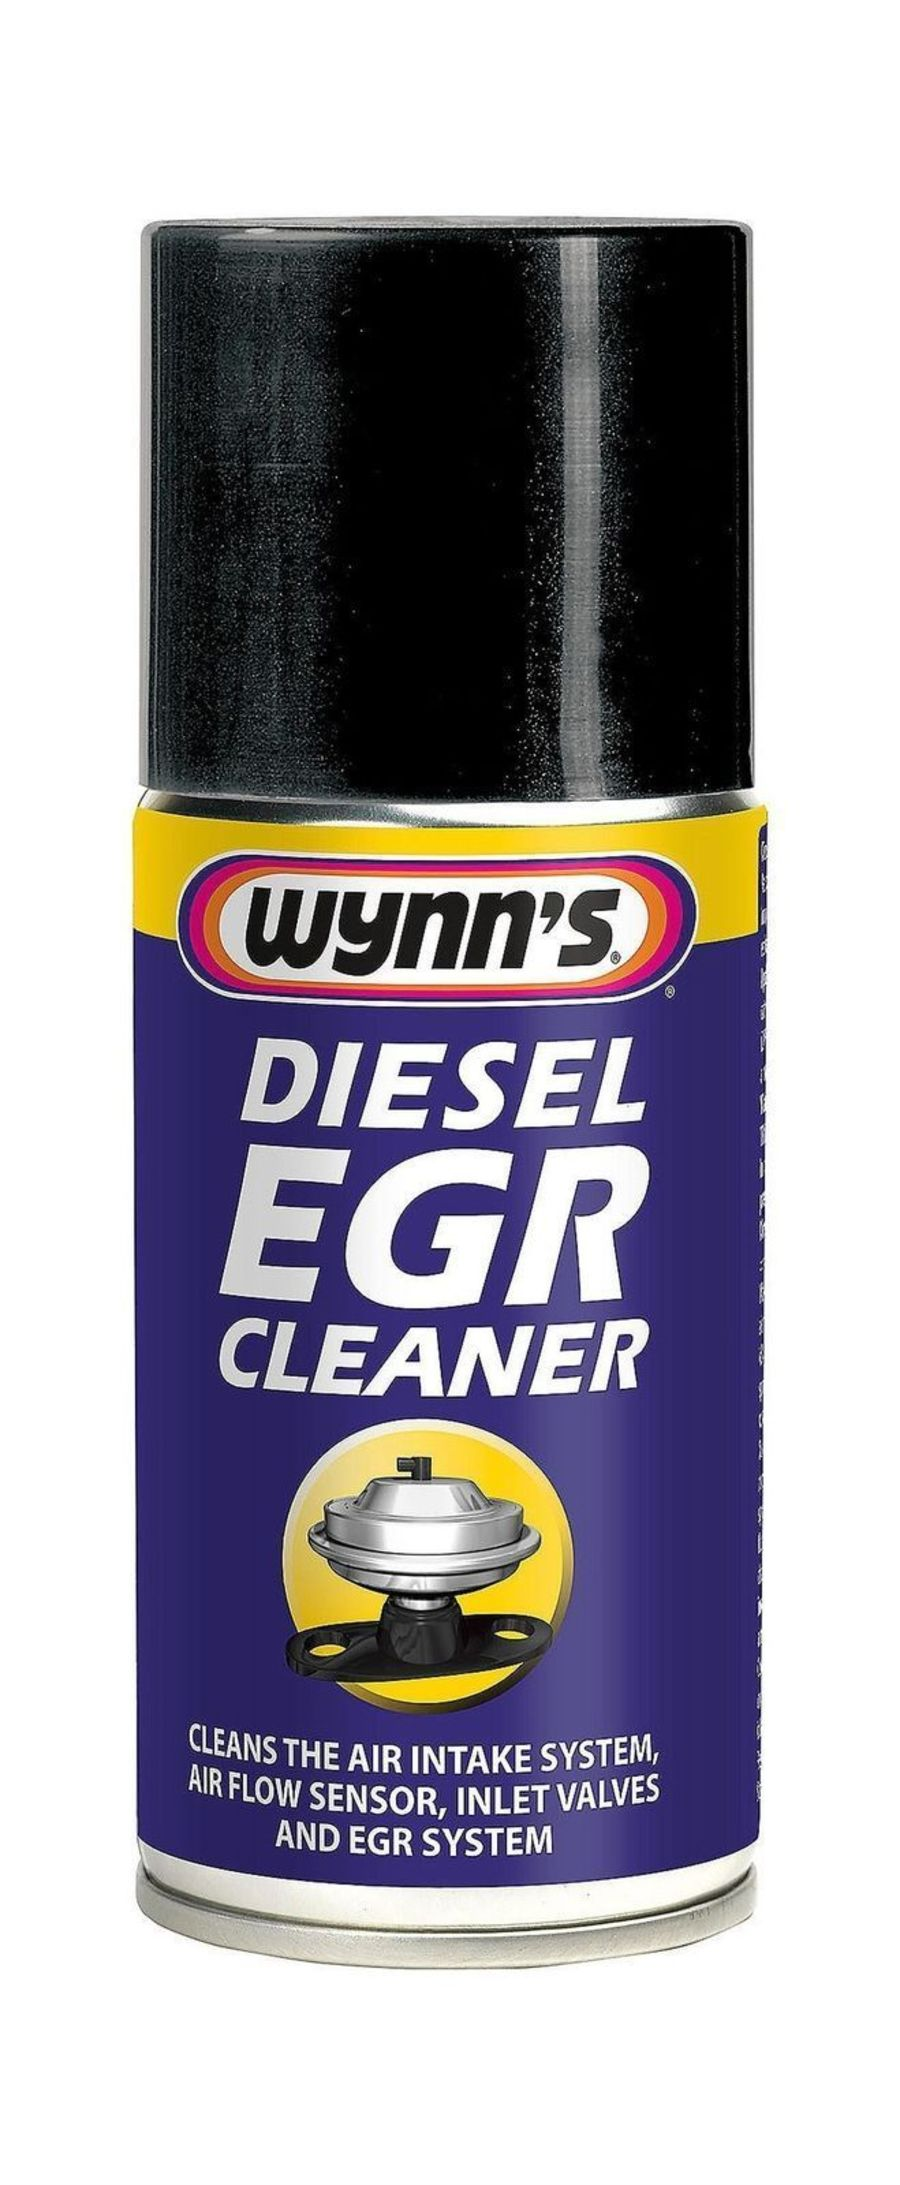 Wynns Diesel EGR Cleaner, 150 ml, air flow sensor, inlet valves, air